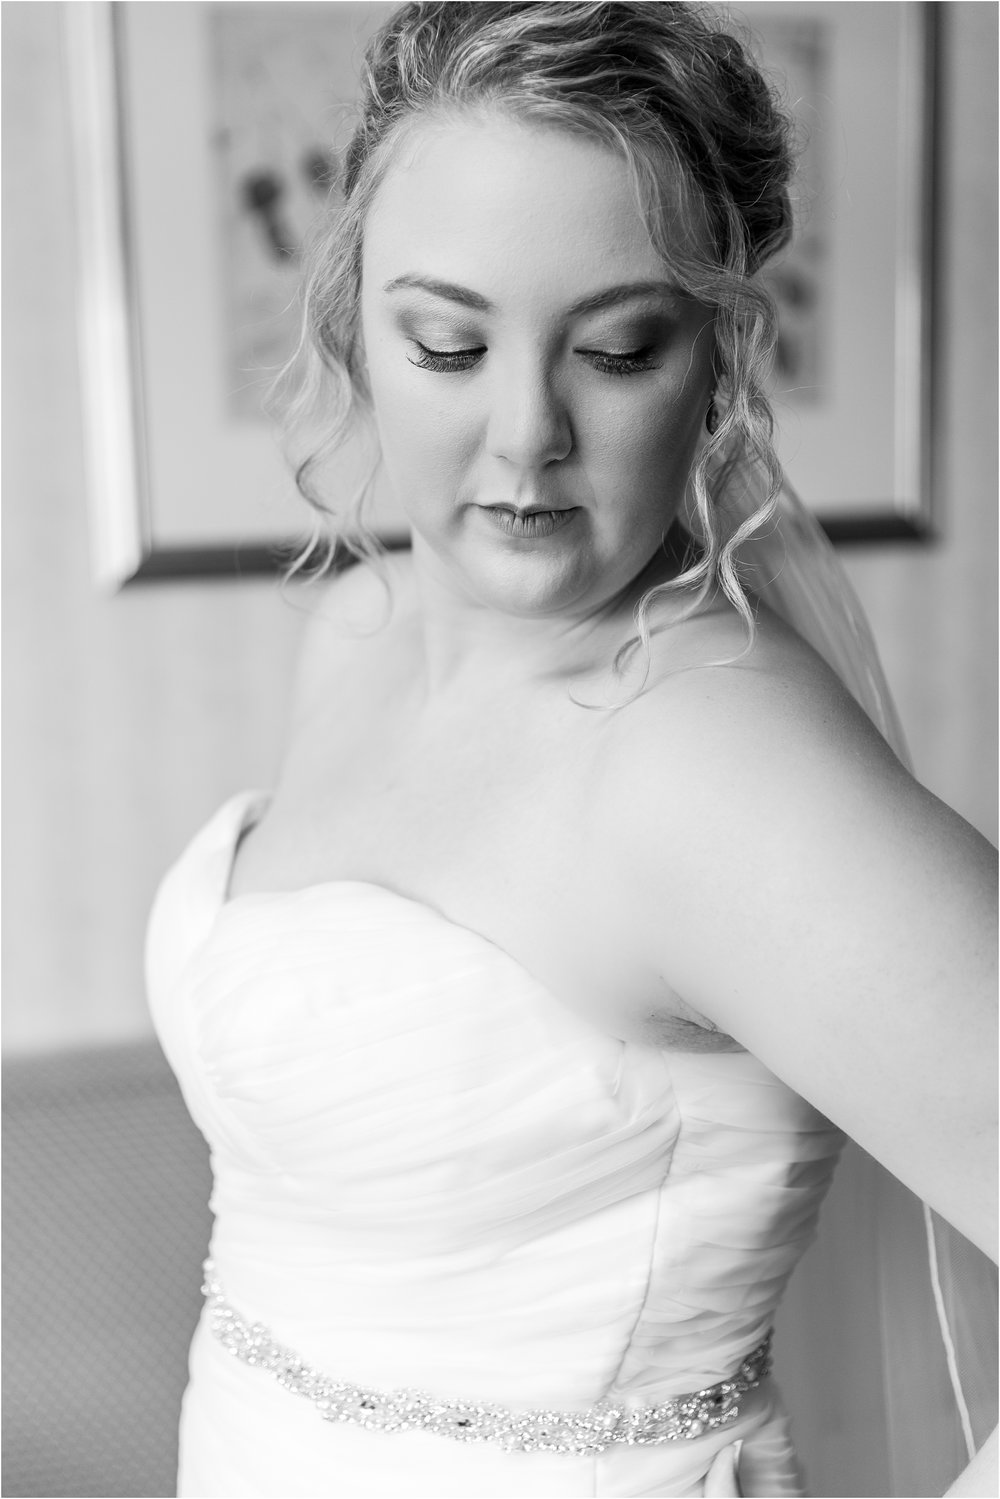 joyful-and-candid-navy-blush-wedding-photos-at-crystal-gardens-in-howell-mi-by-courtney-carolyn-photography_0024.jpg